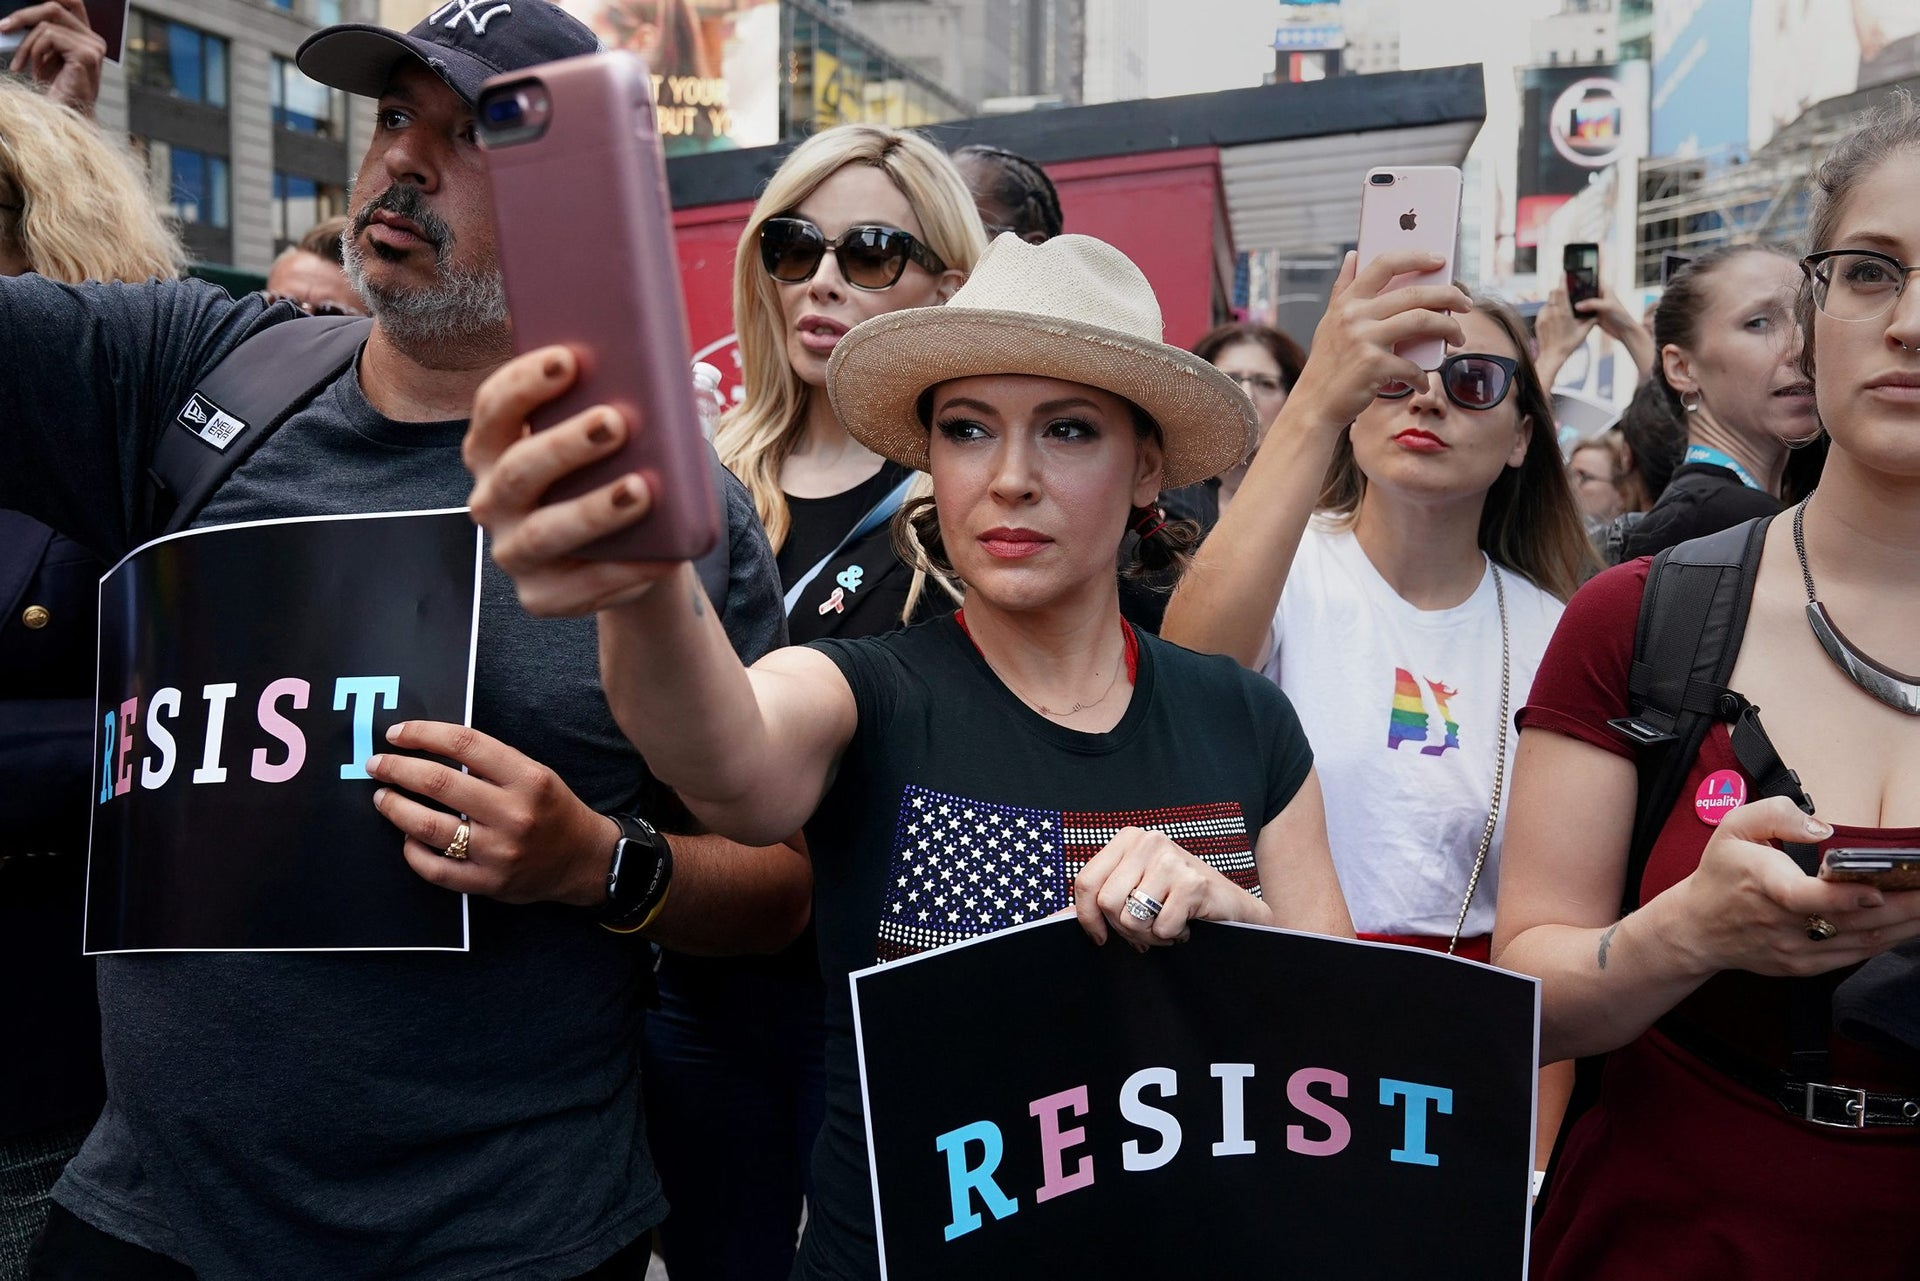 Actress Alyssa Milano attends a protest in Times Square, New York City, New York, U.S., July 26, 2017.